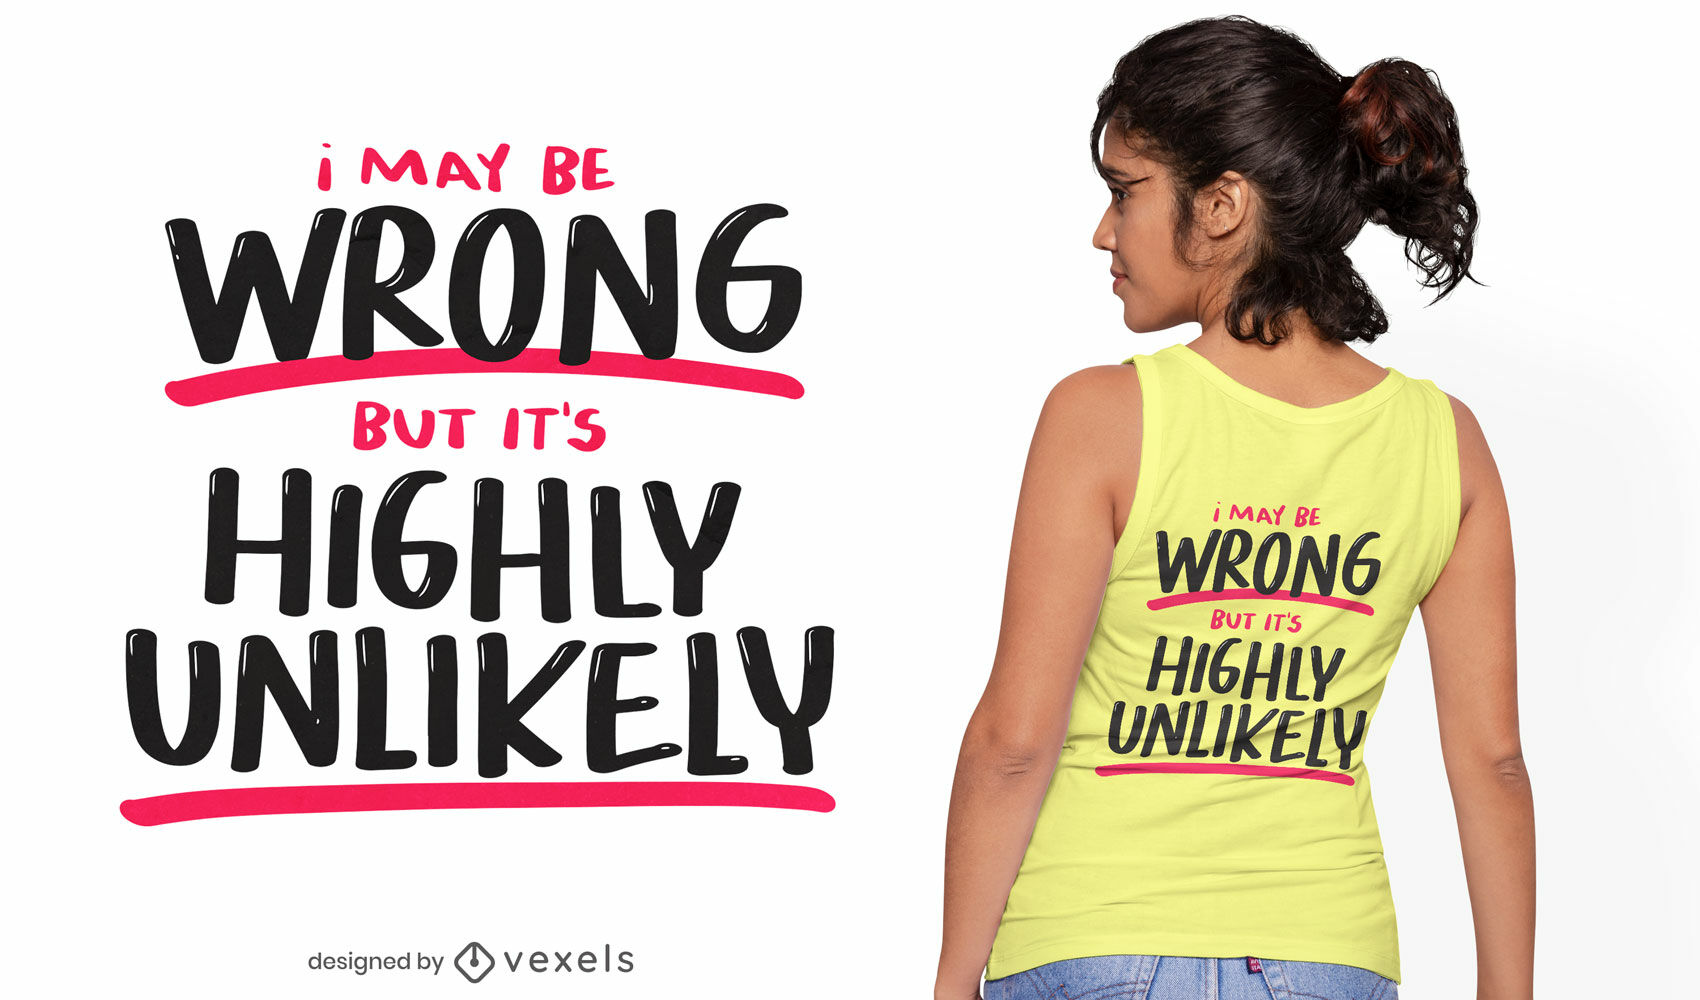 May be wrong quote t-shirt design